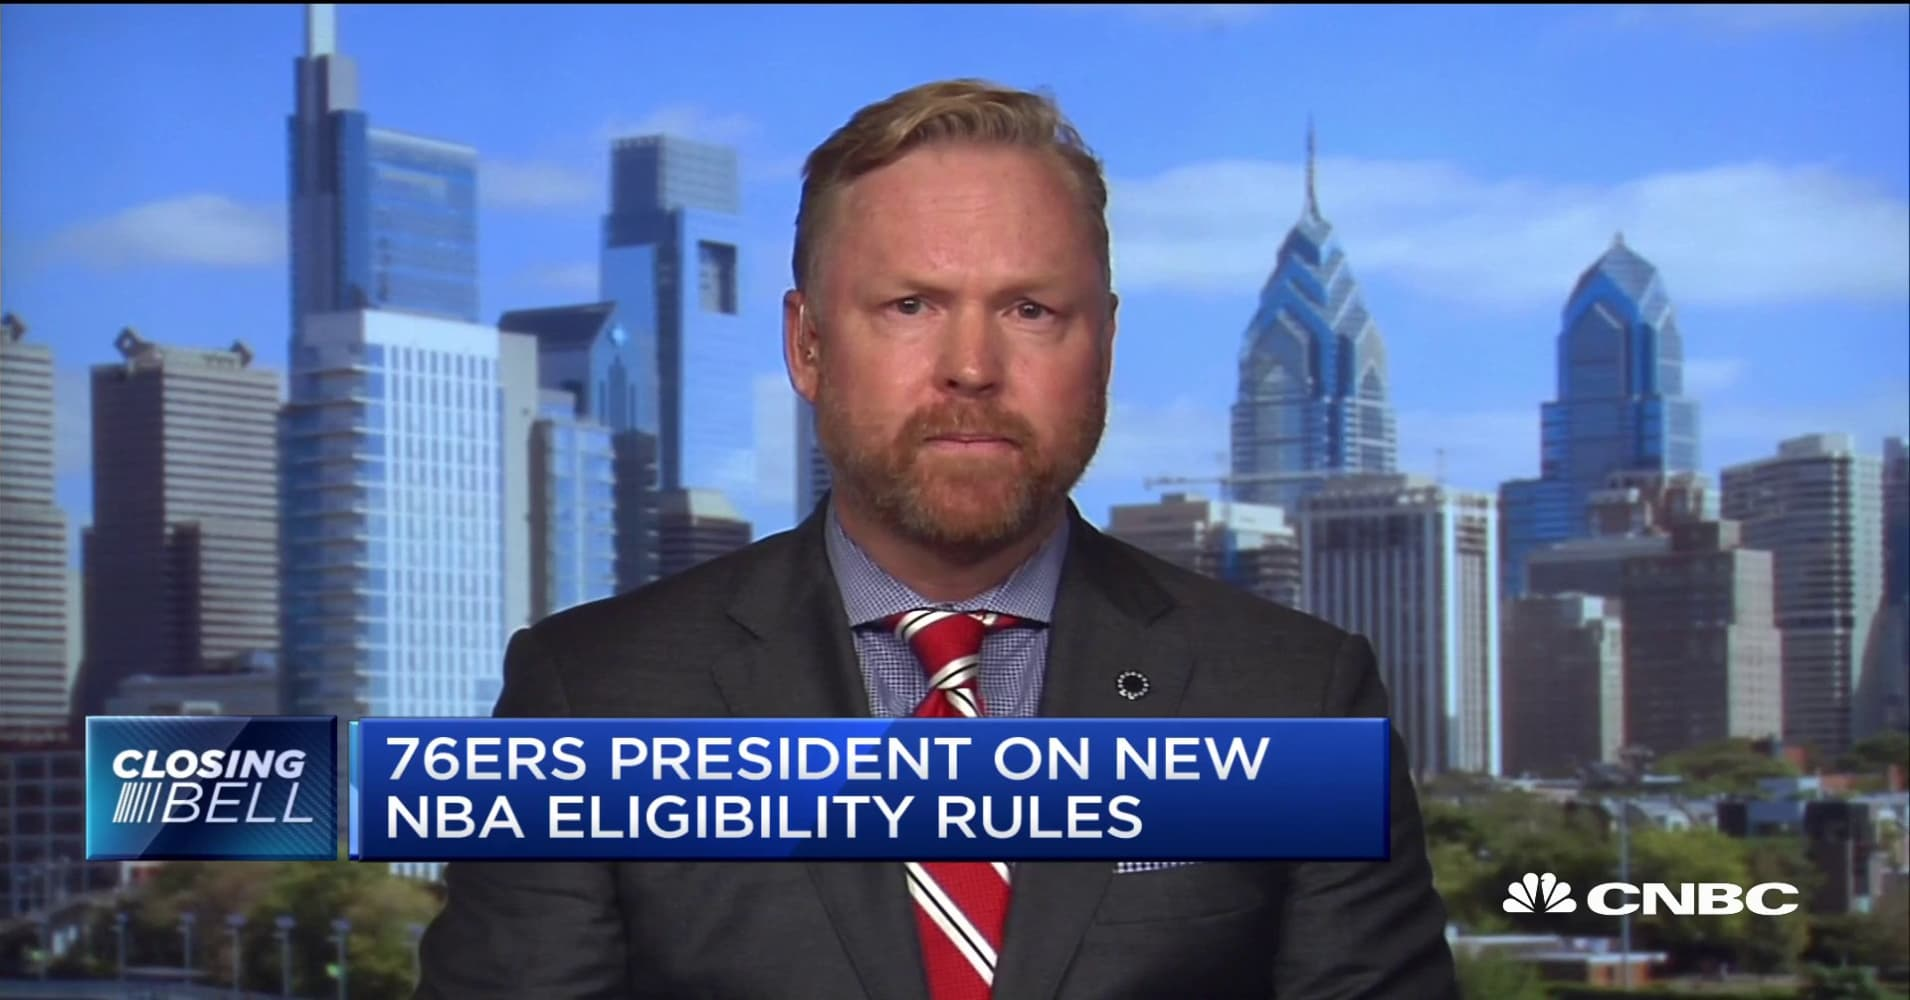 Watch CNBC's full interview with Philadelphia 76ers president Chris Heck